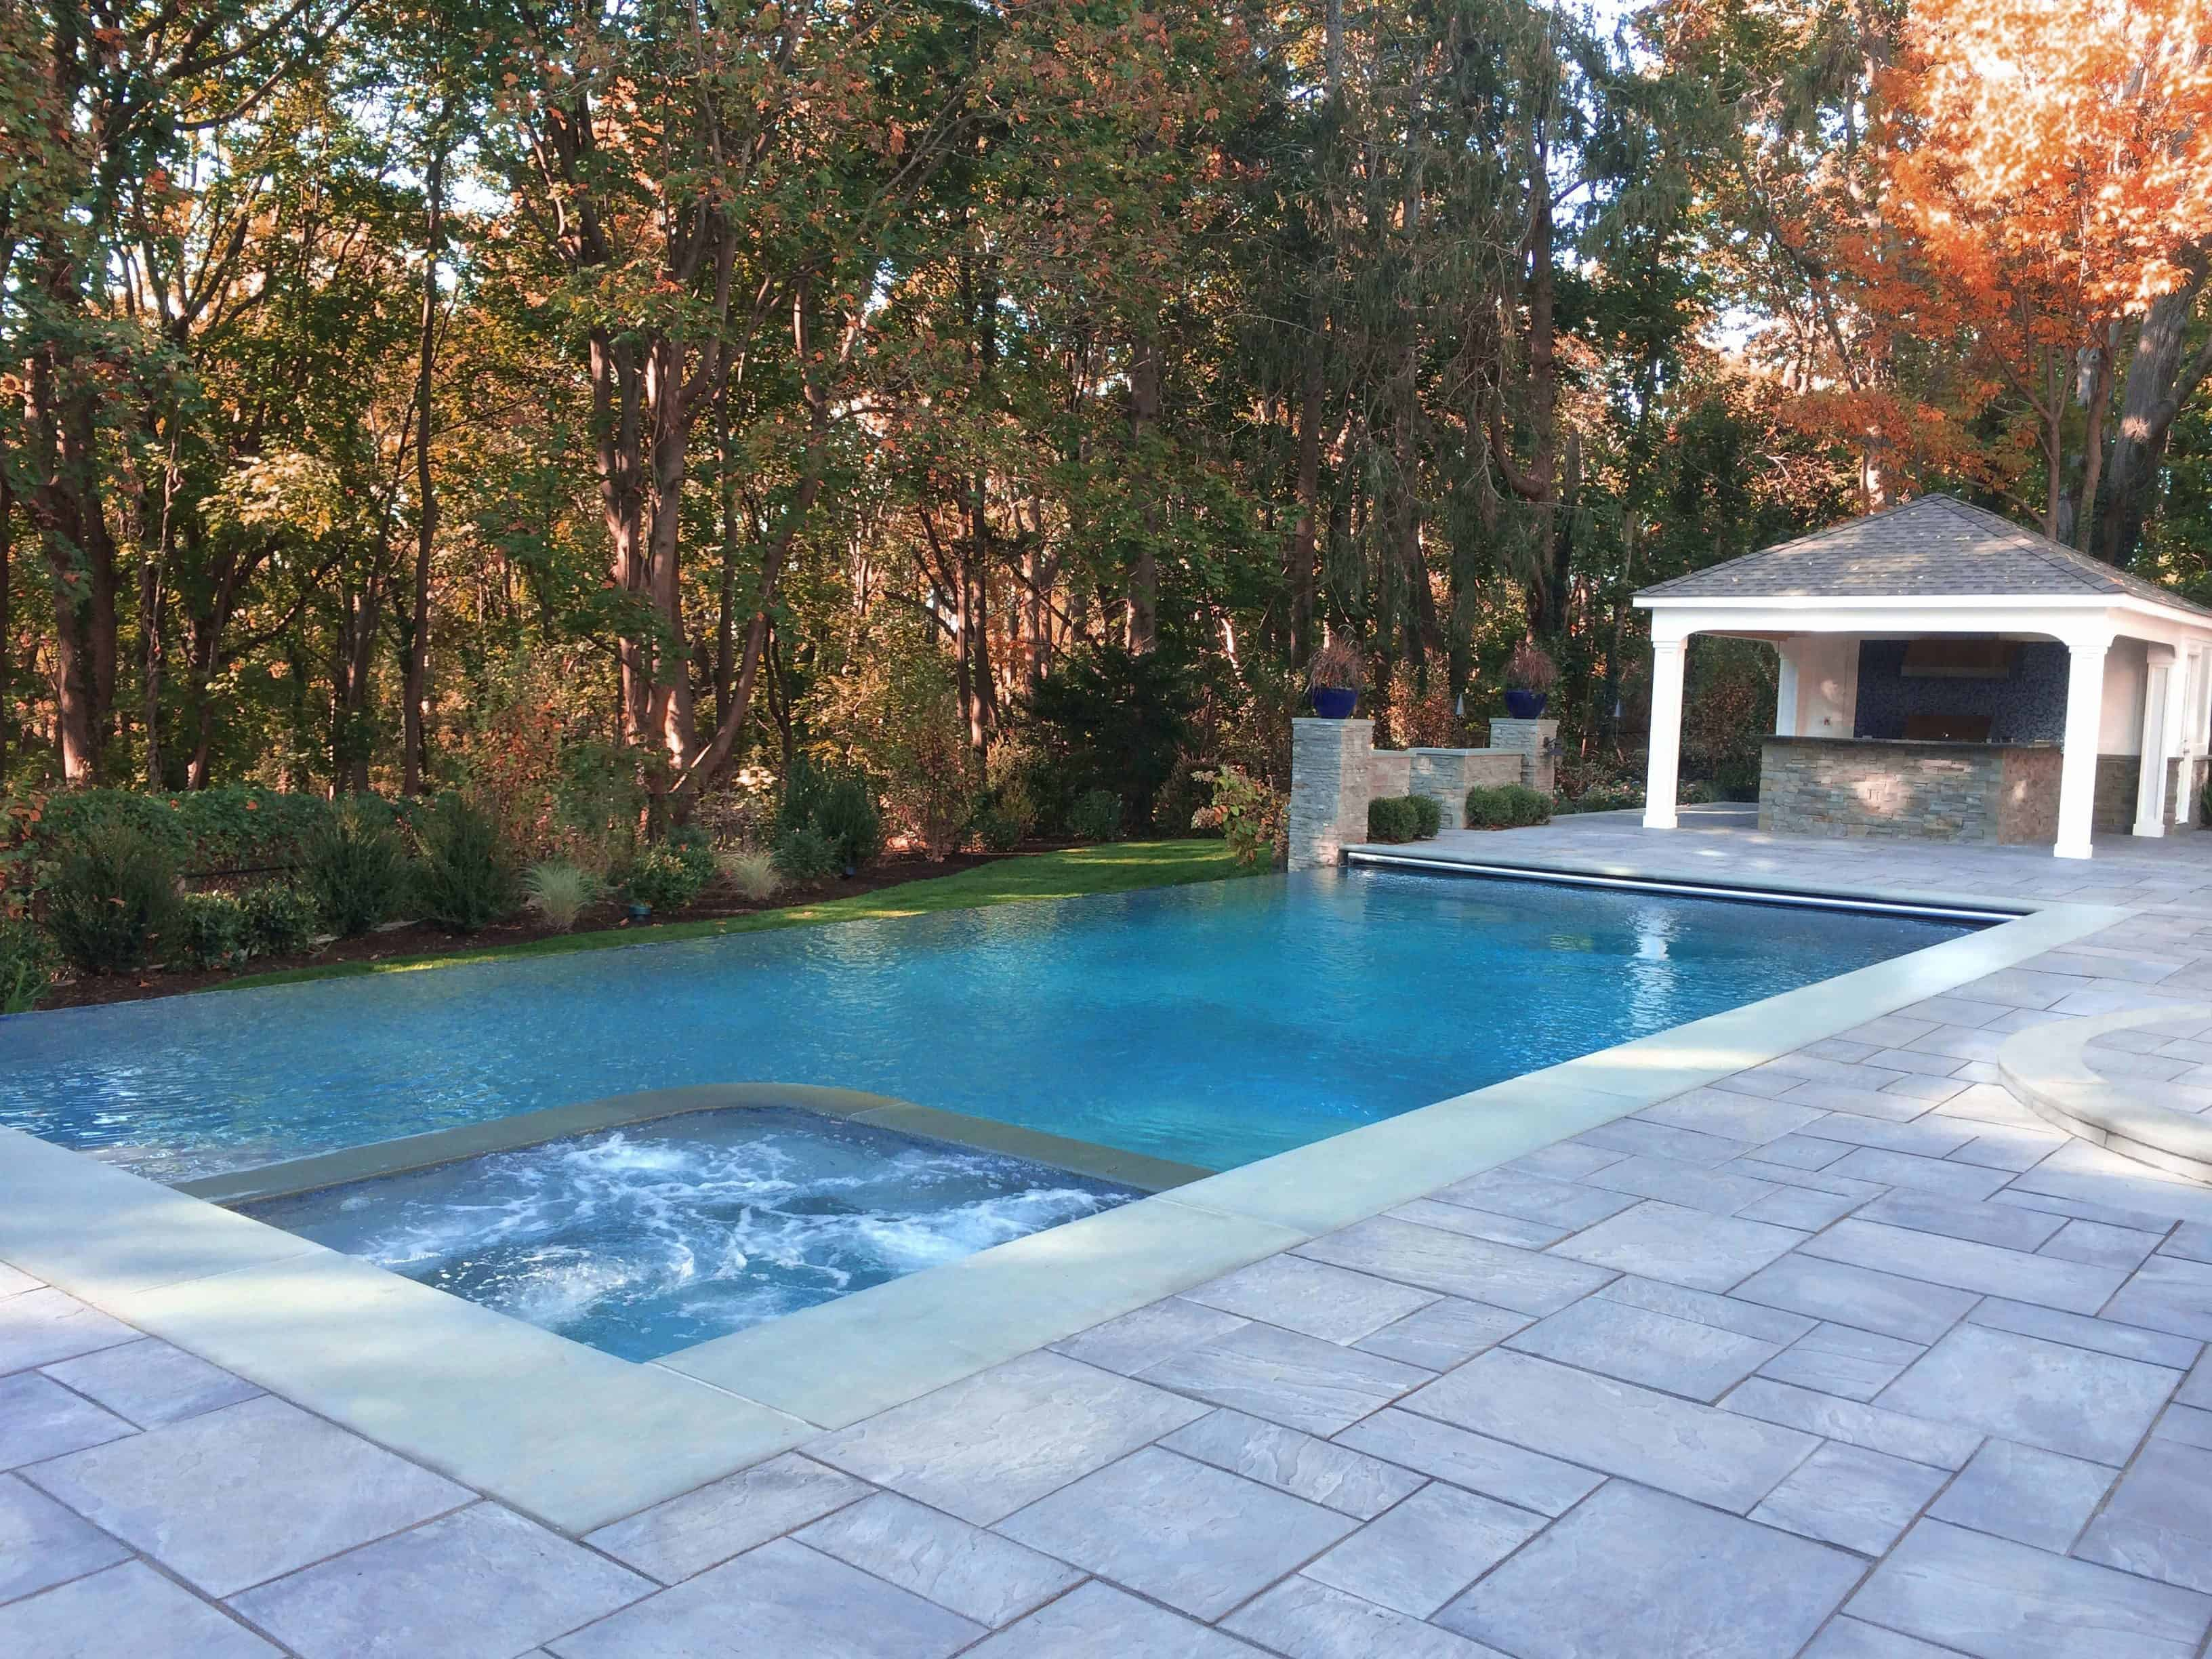 Custom Pool House/Cabana with Outdoor Kitchen/Bar, Storage, Bathroom and Indoor/Outdoor Shower - Manhasset, Long Island NY